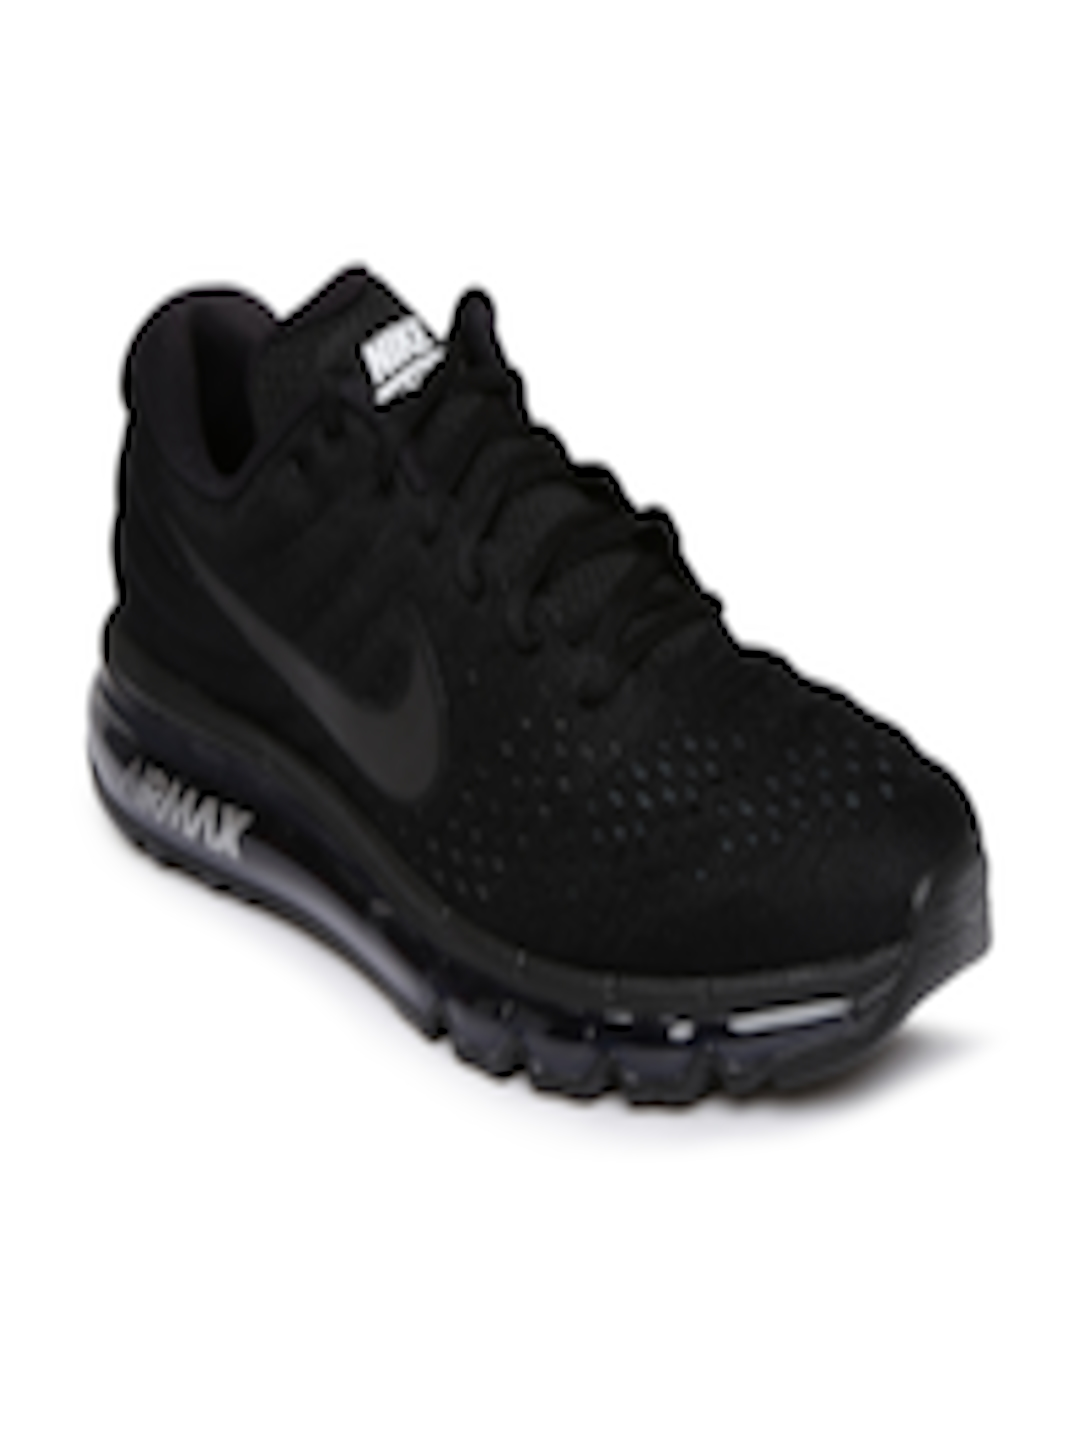 sports shoes d37dd f0188 Buy Nike Men Black Air Max 2017 Running Shoes - - Footwear for Men